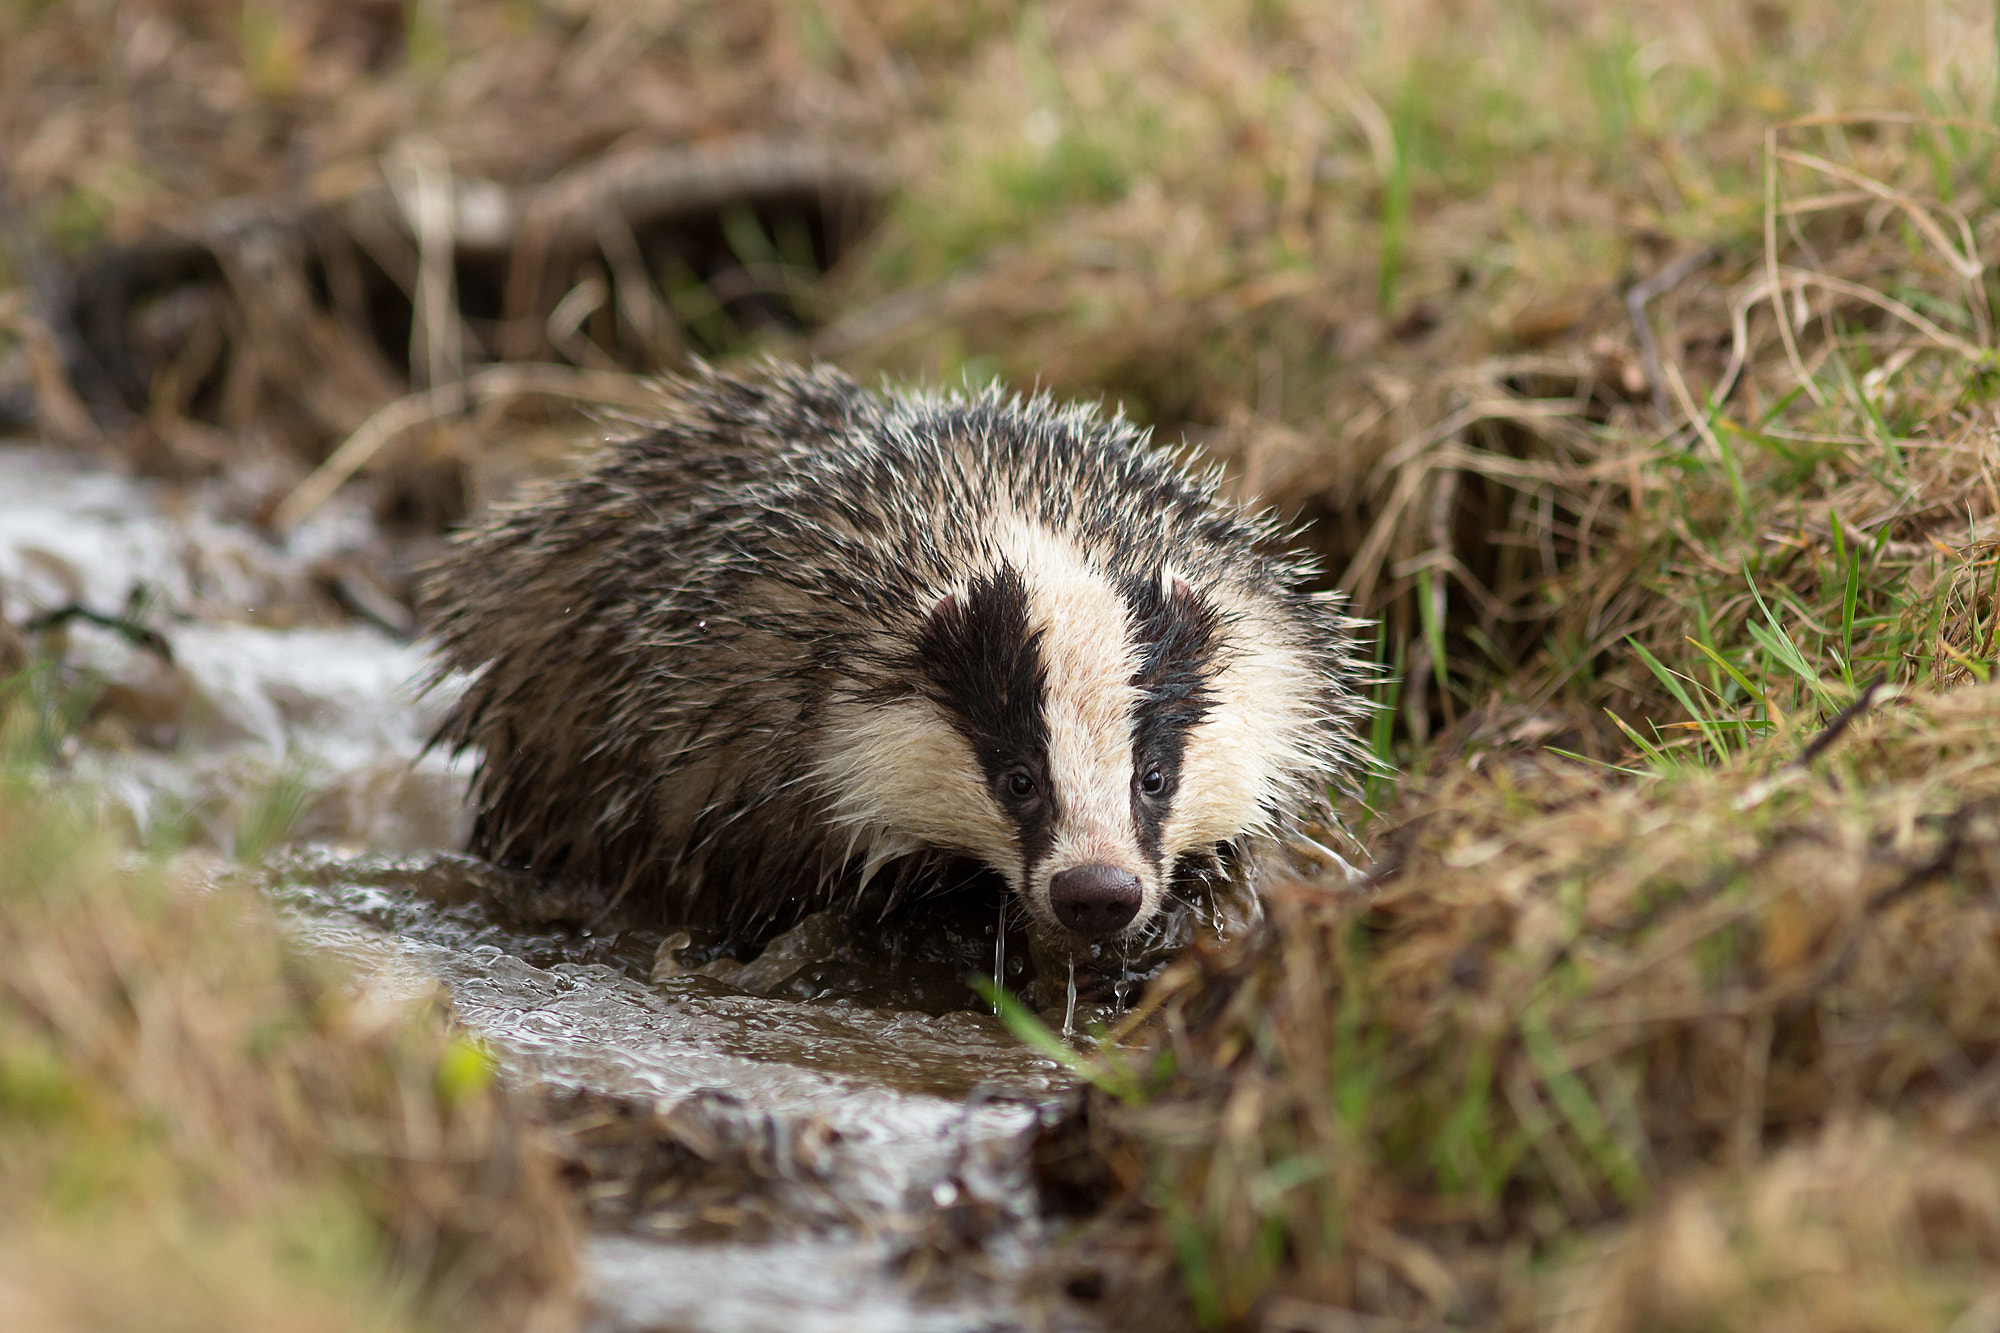 Photograph Badger by Milan Zygmunt on 500px